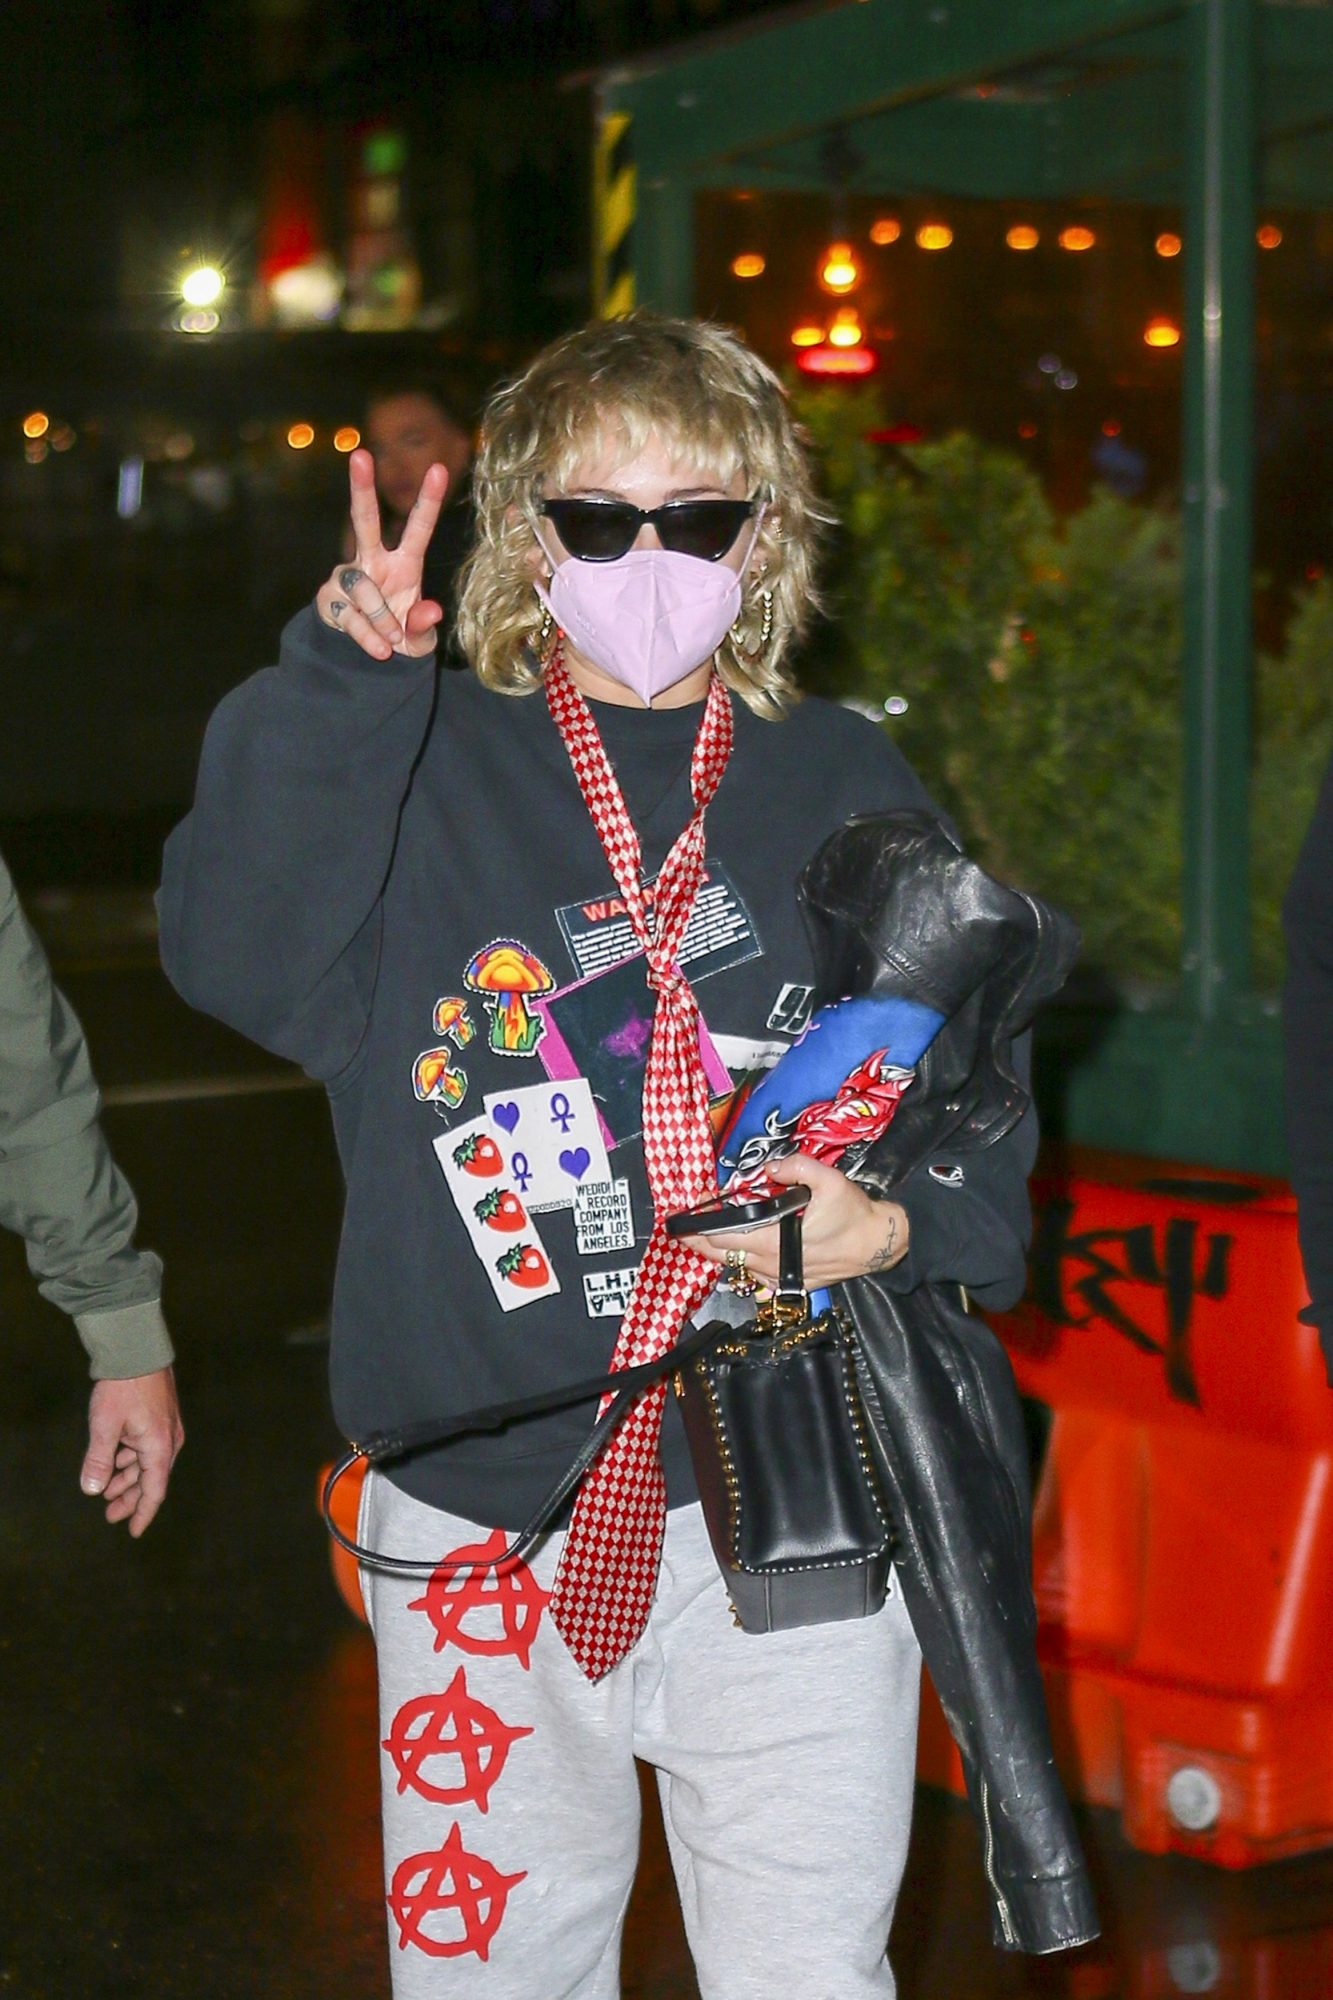 Miley Cyrus Flashes a Peace Sign as she Arrives in NYC Ahead of SNL Performance